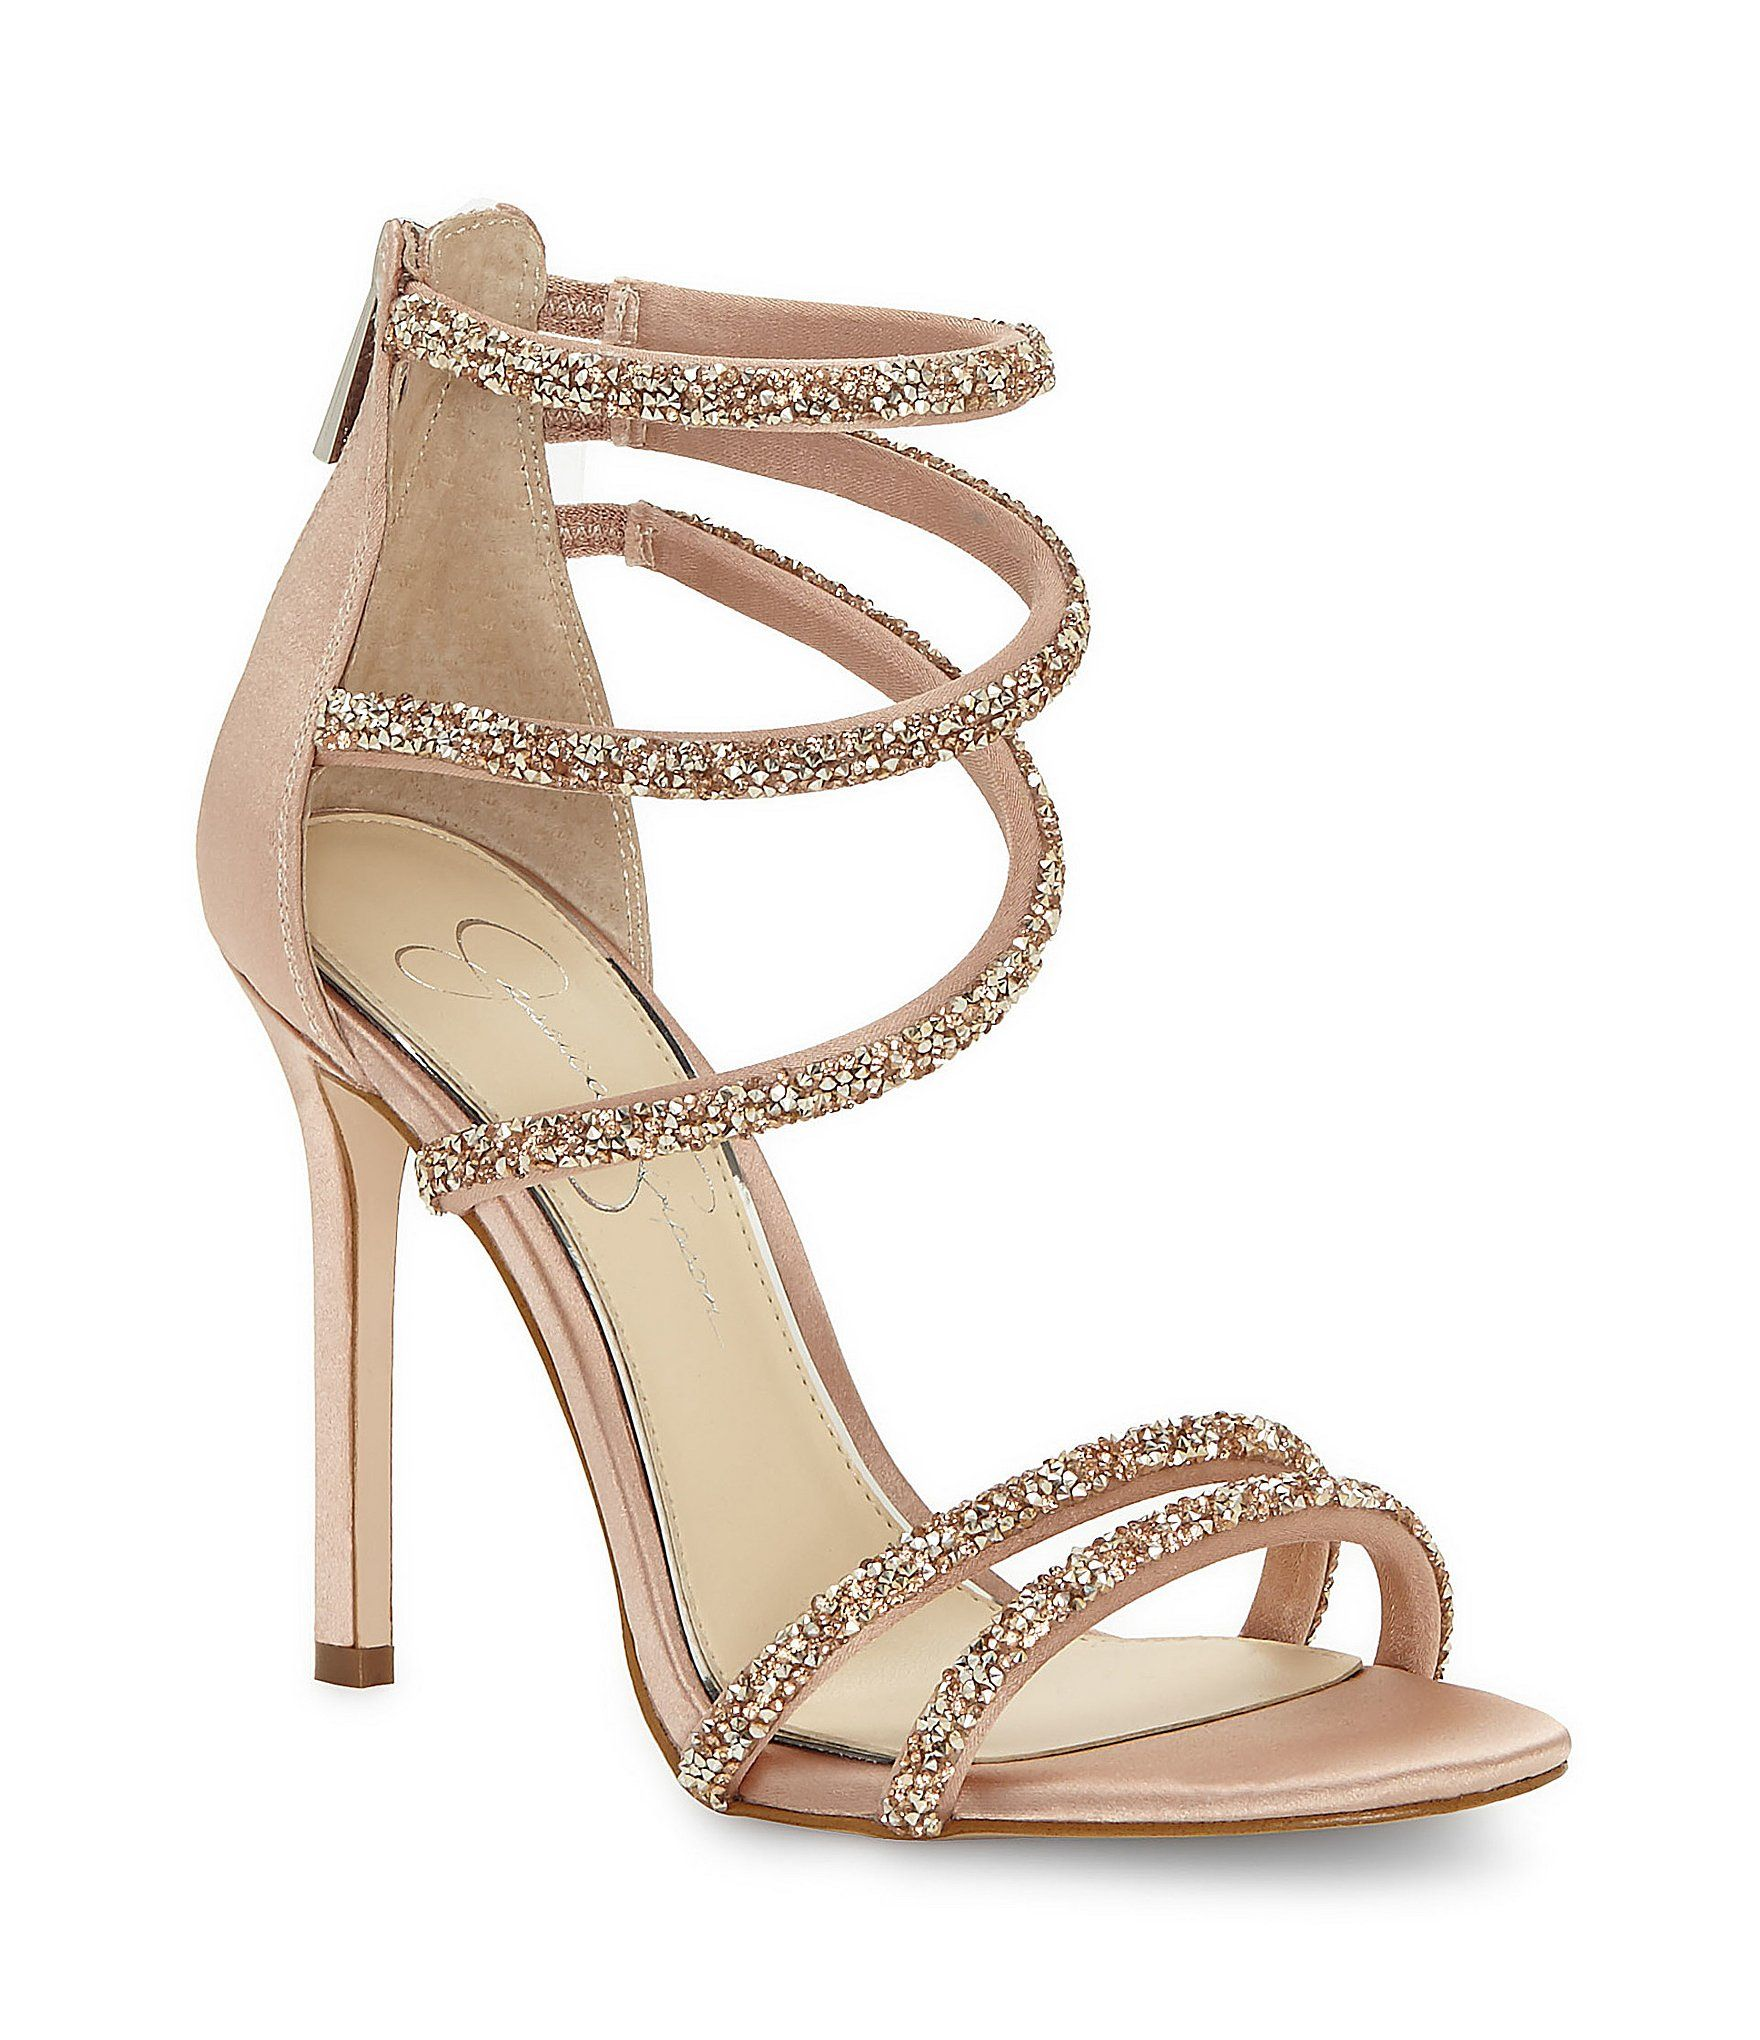 Jessica Simpson Jamalee Caviar Rhinestone Ornamented Strappy Dress Sandals X90GthwE